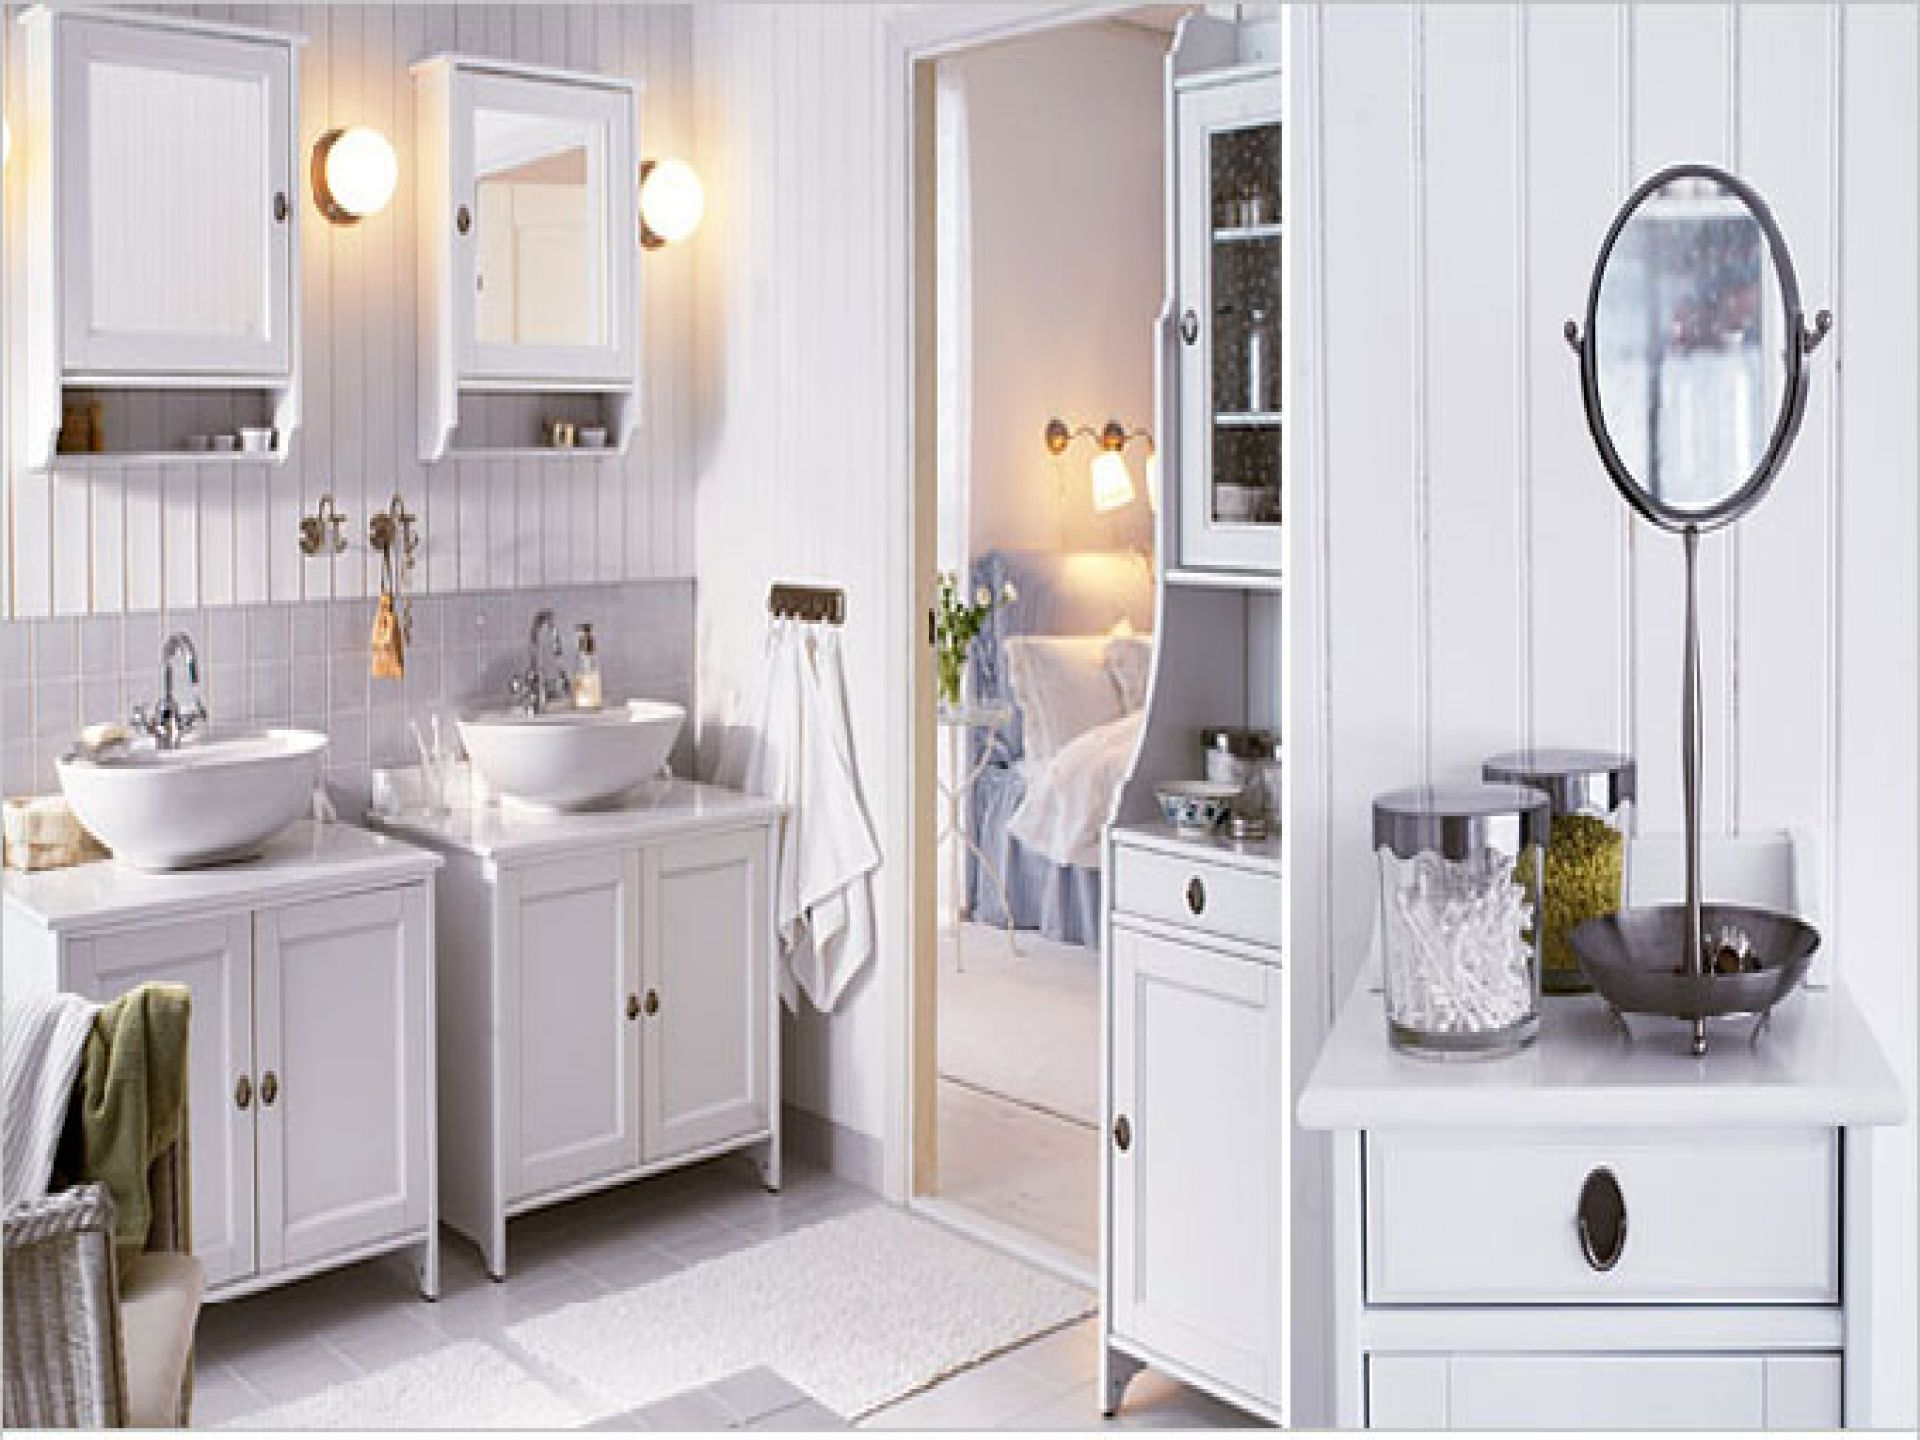 alluring for your home decor interior design with ikea on ikea bathroom vanities id=65787